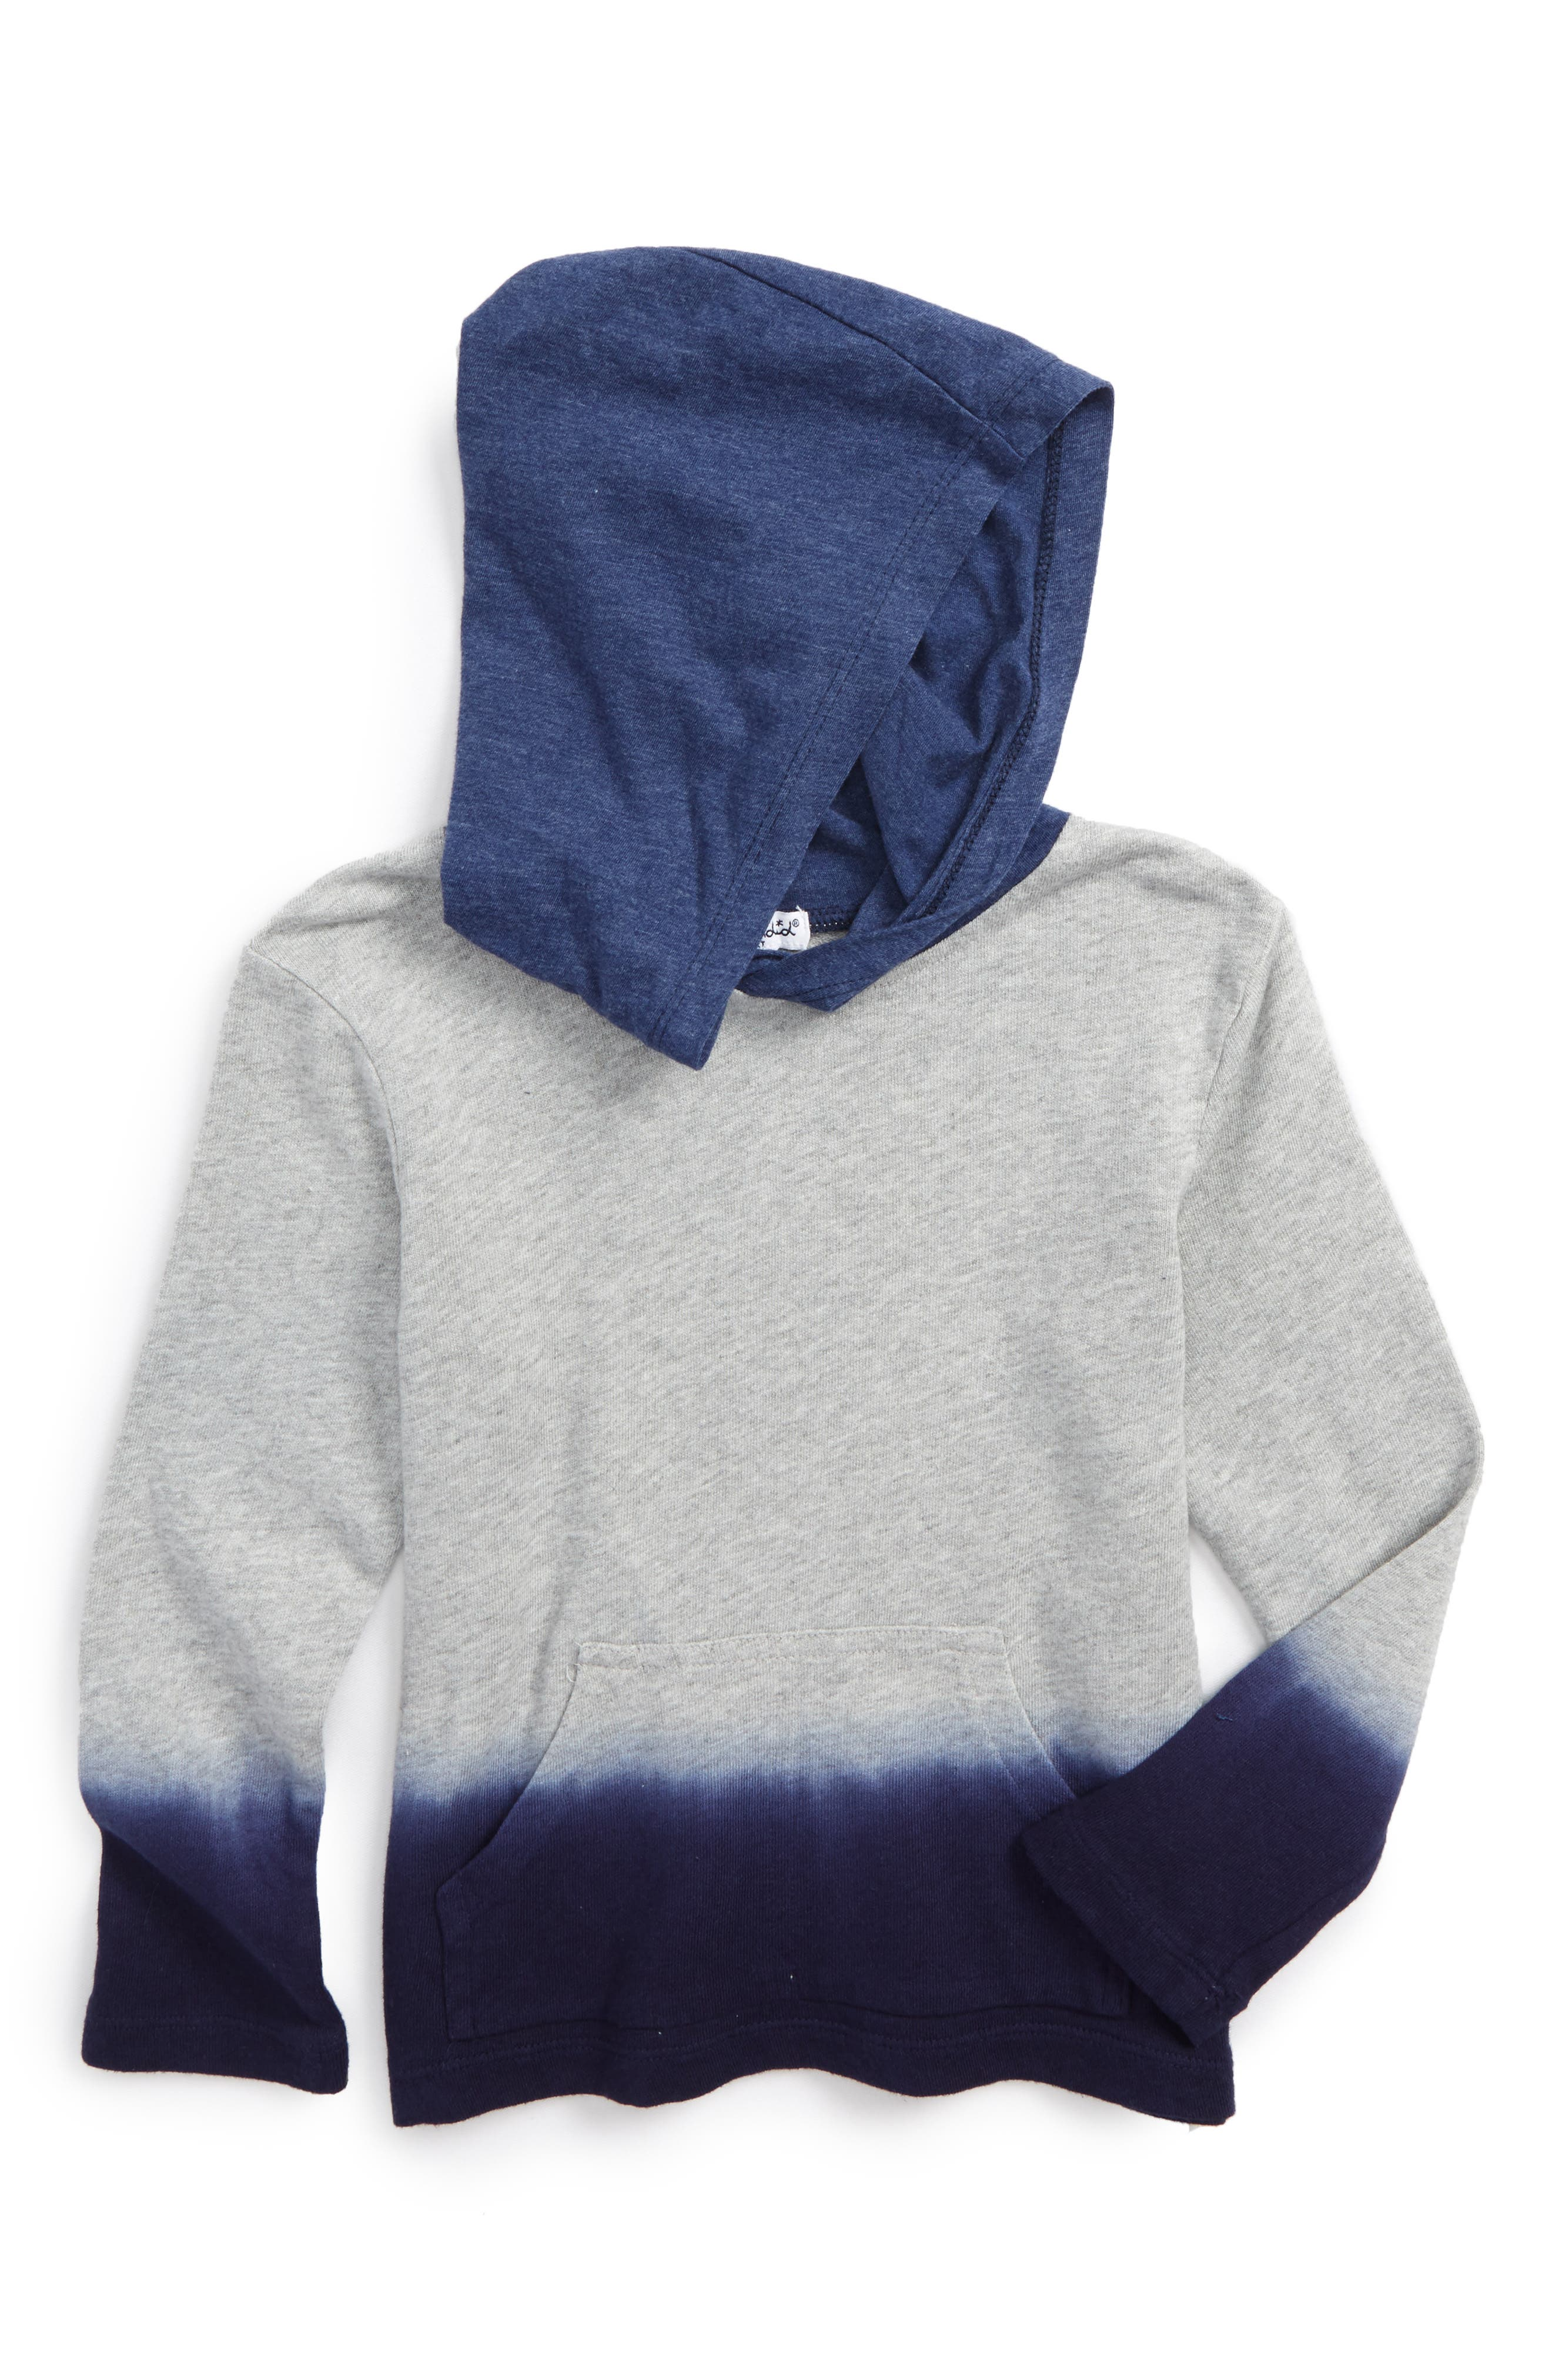 Splendid Dip Dye Hoodie (Toddler Boys & Little Boys)